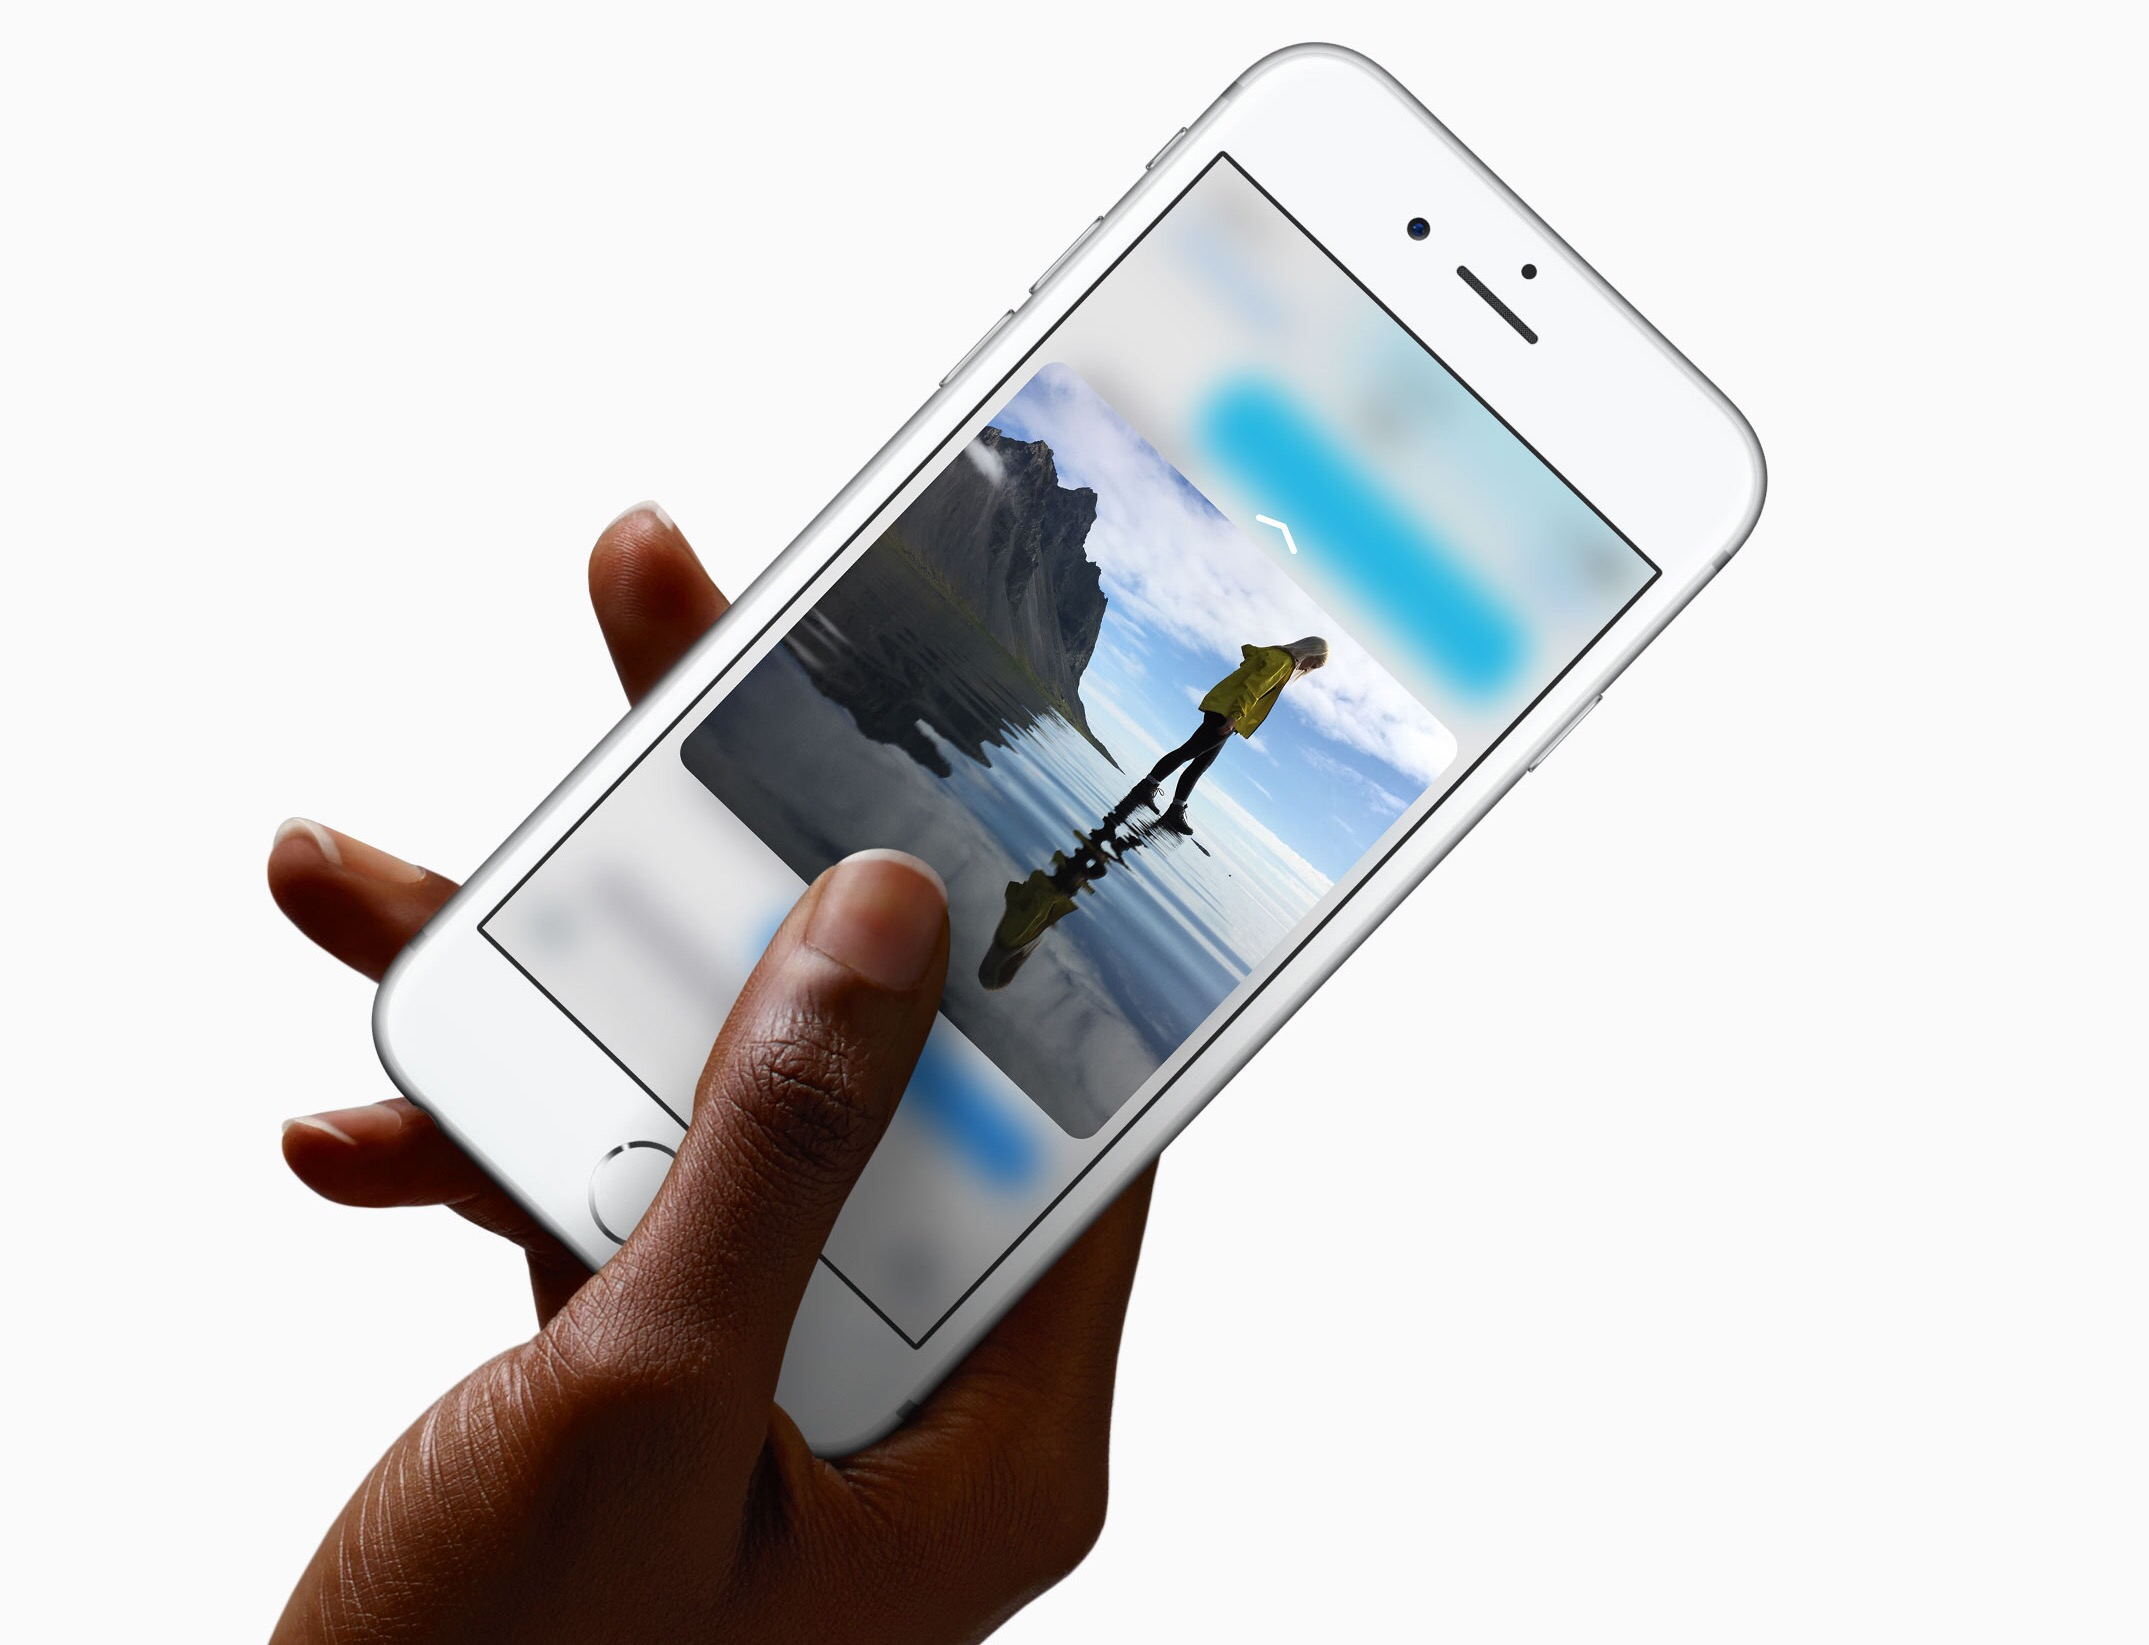 Apple is planning on bringing 3D Touch to its future iPads